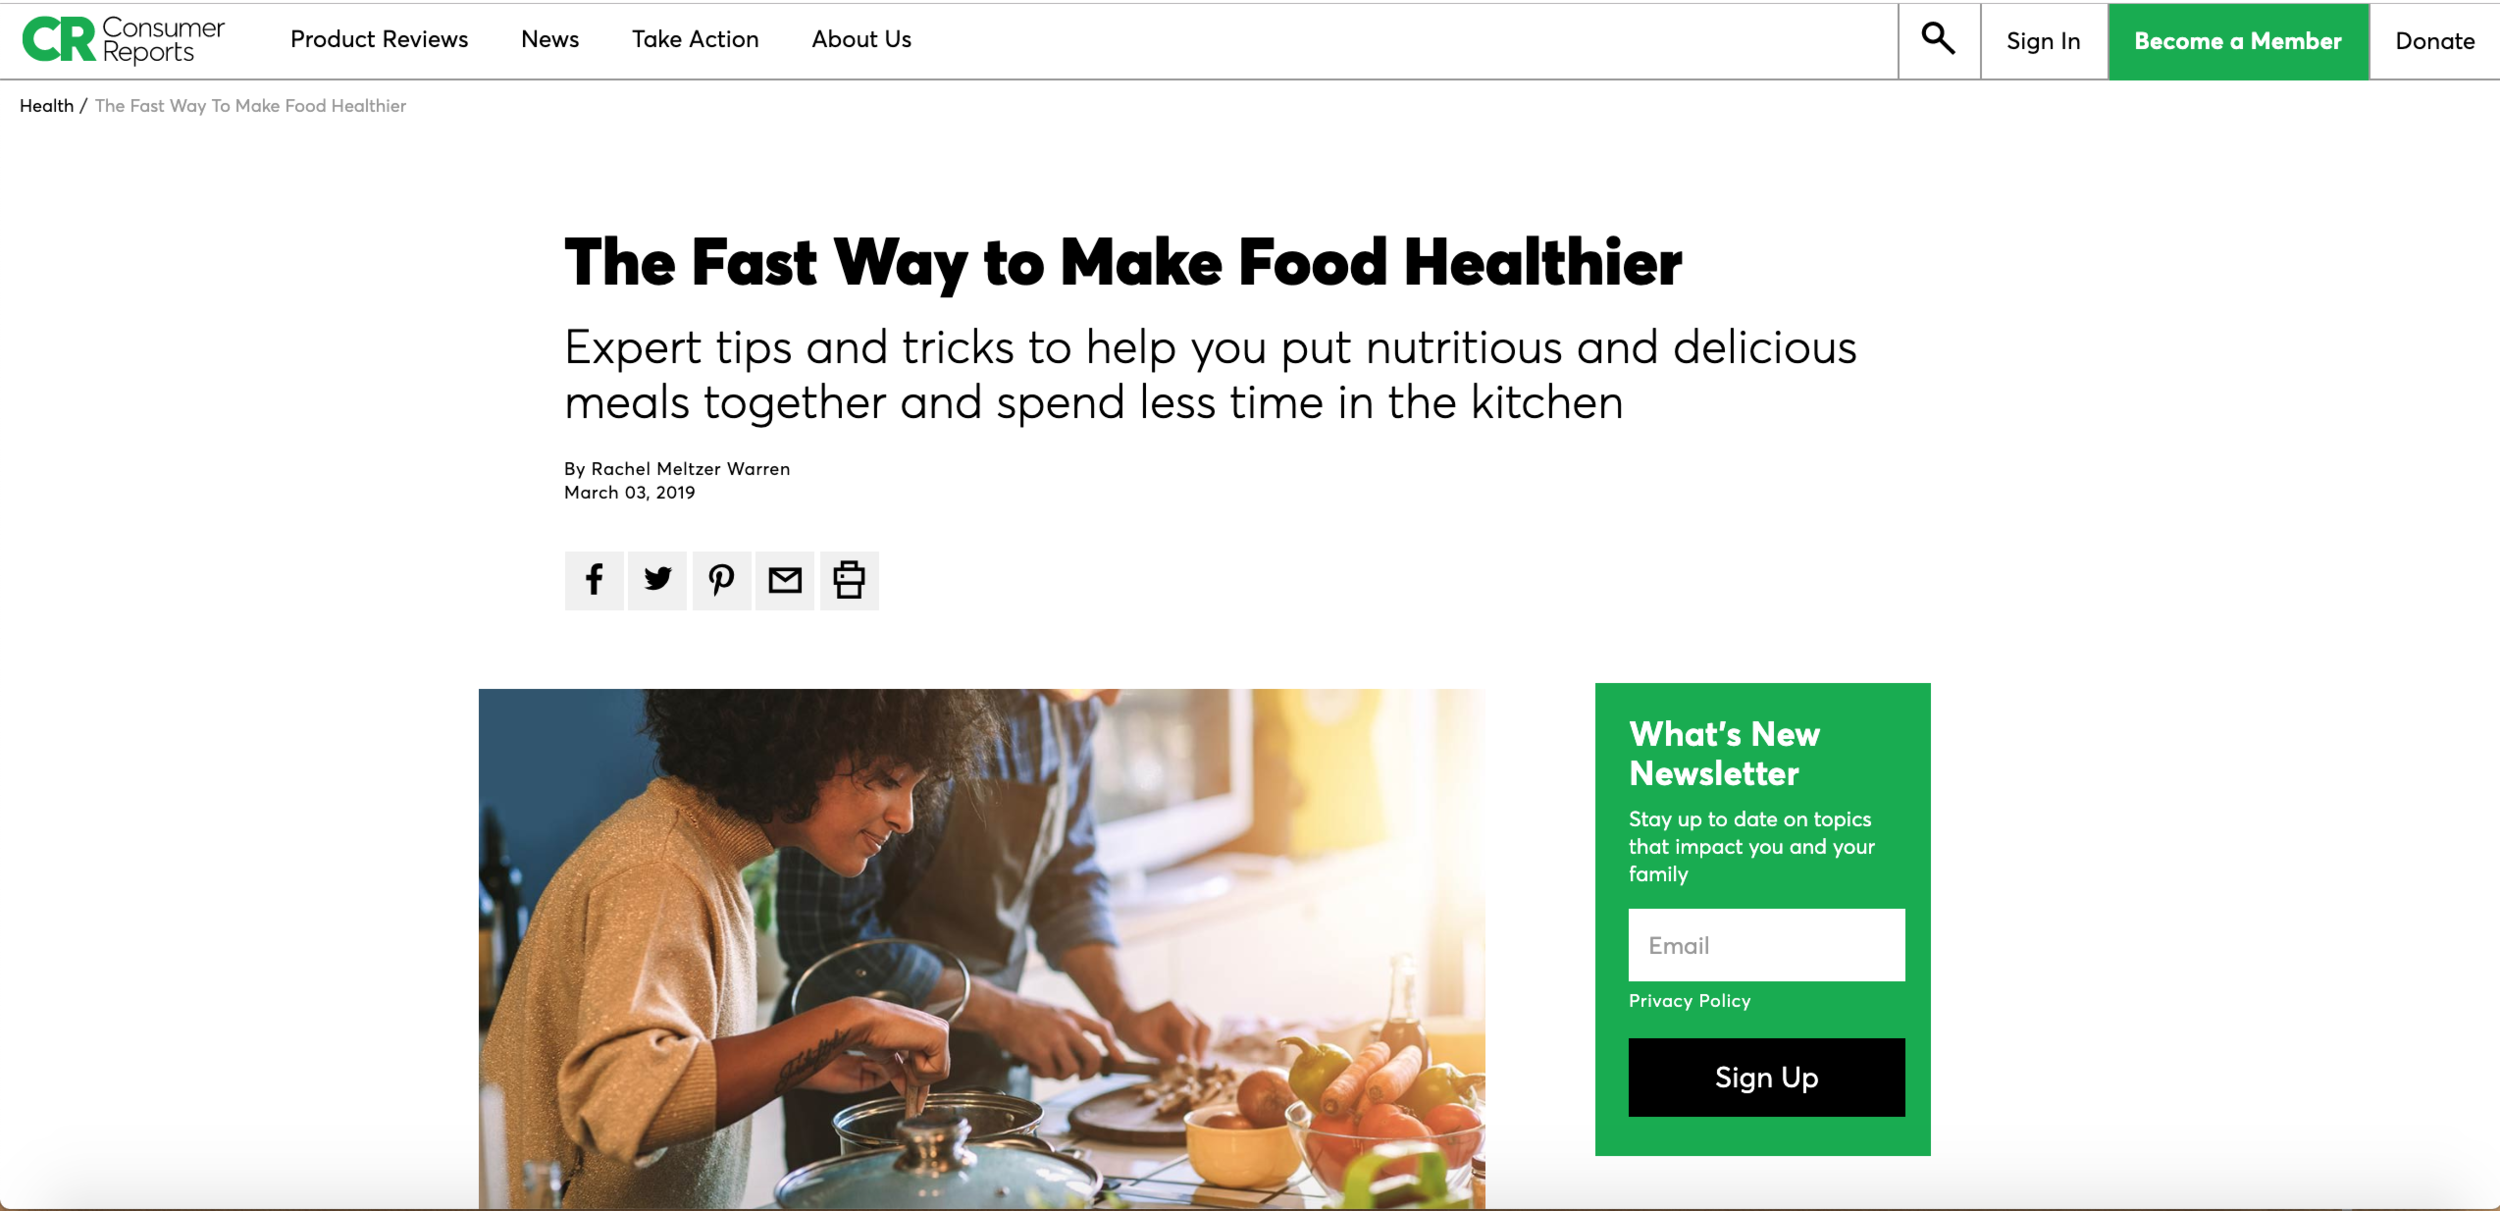 The Fast Way to Make Food Healthier